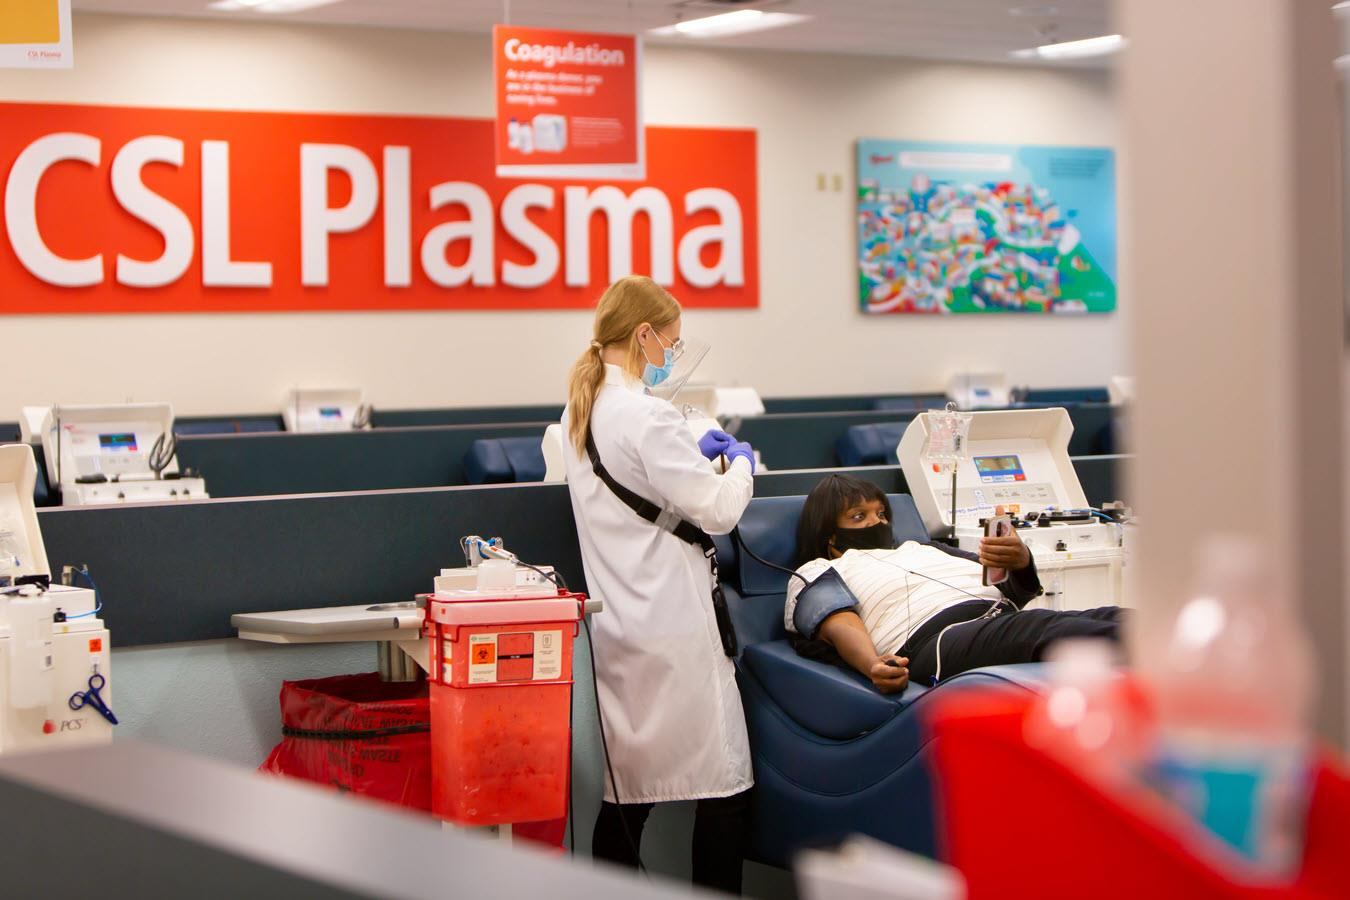 A plasma donor looks at her phone while donating at a CSL Plasma center.